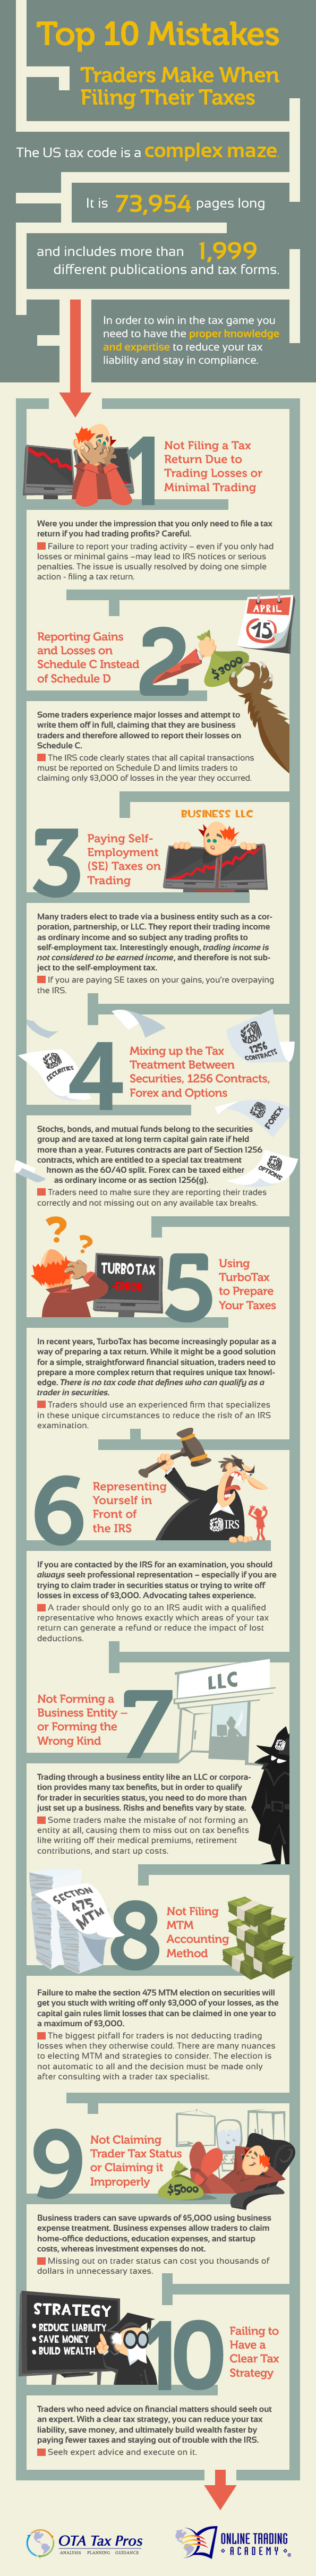 Top 10 Tax Mistakes Traders Make